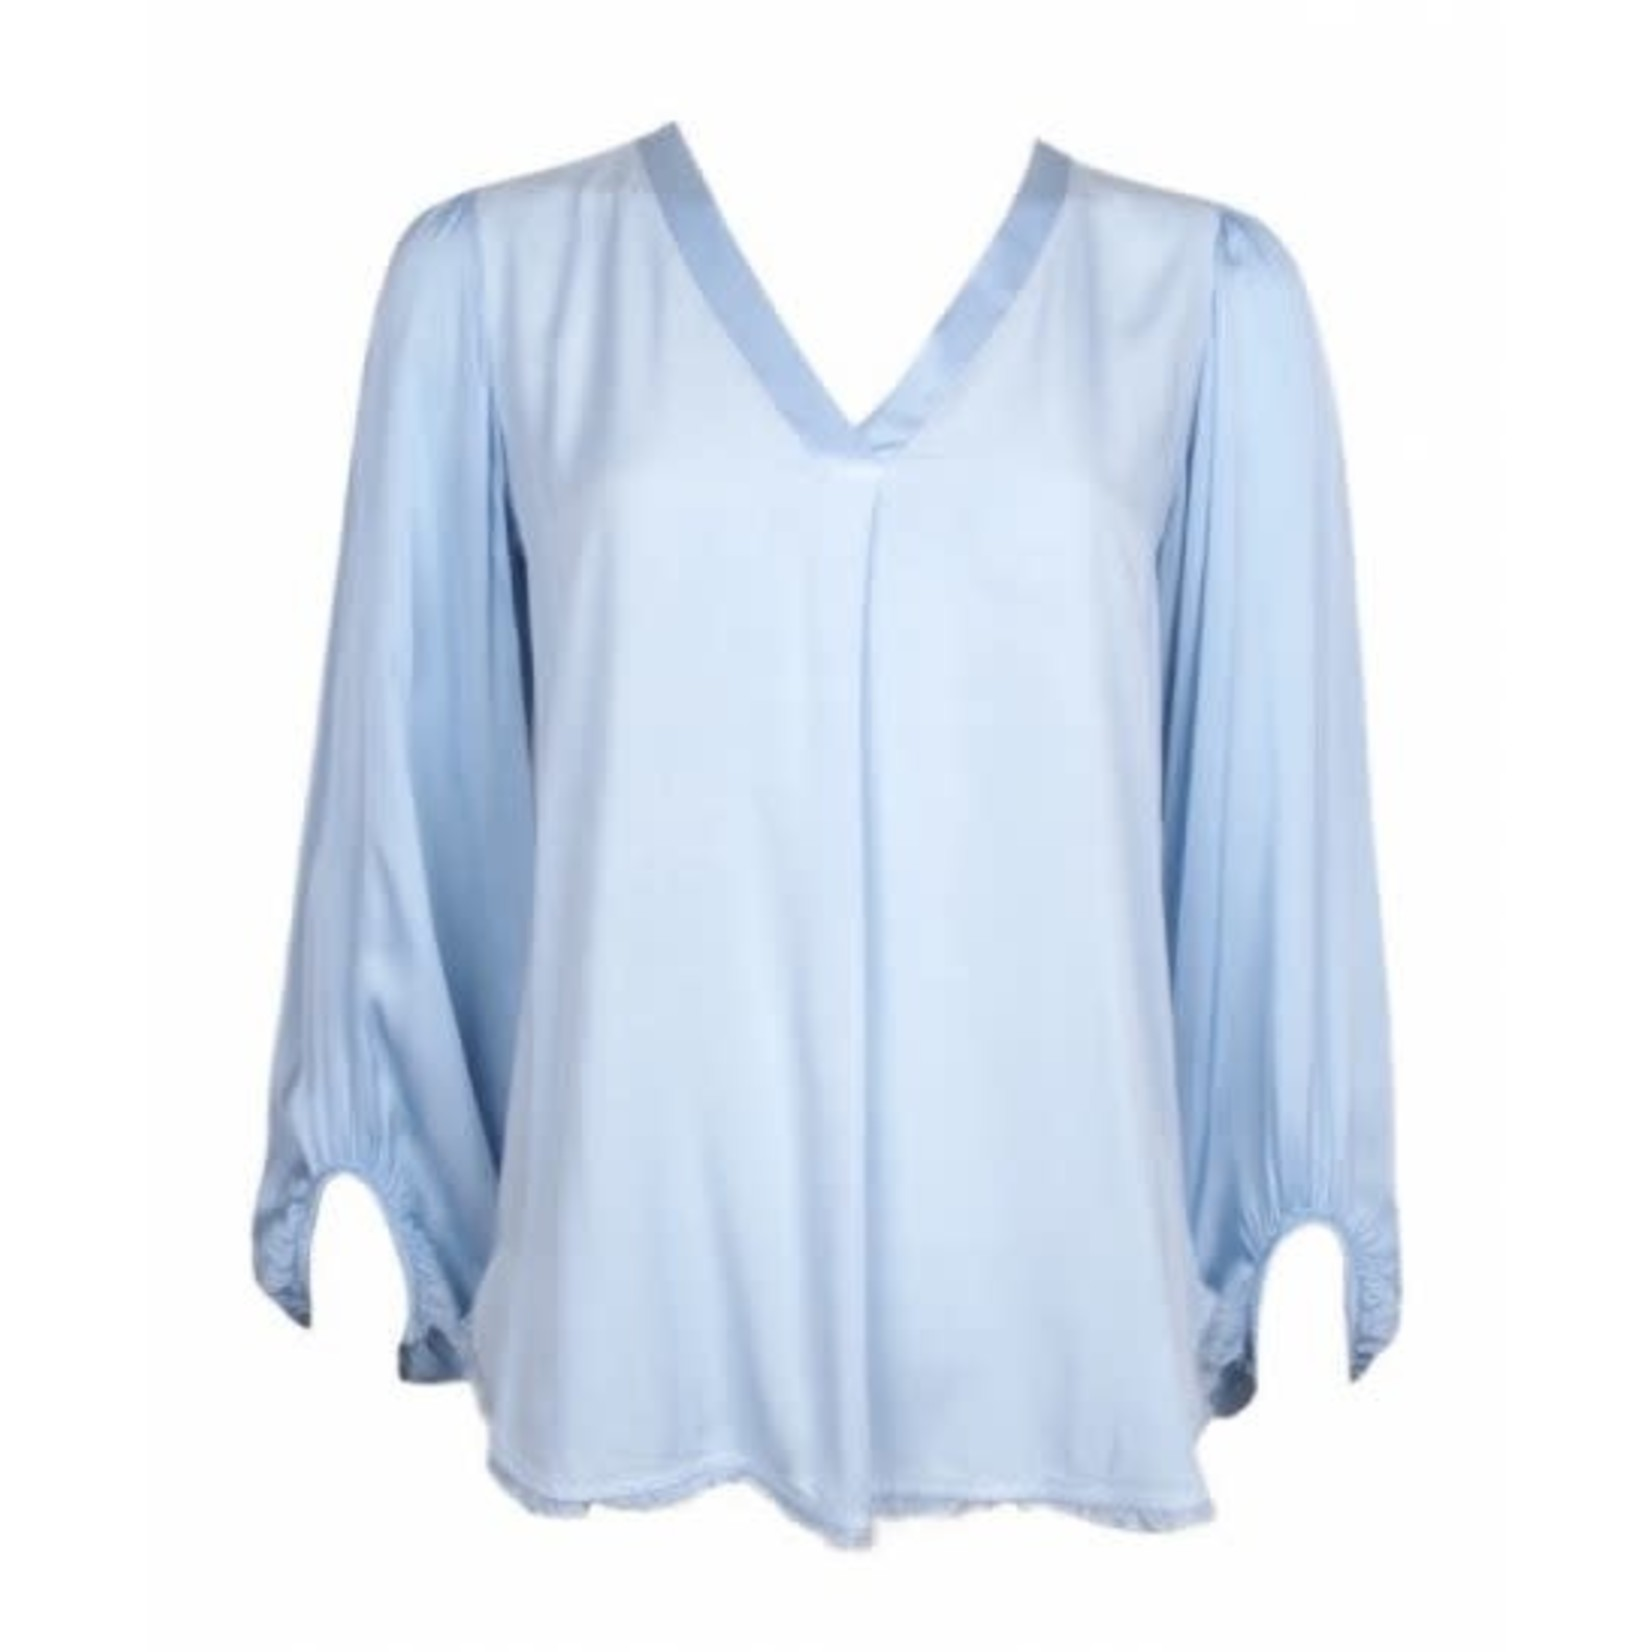 20 to 20 to blouse v neck satin sleeve 21SS102-009